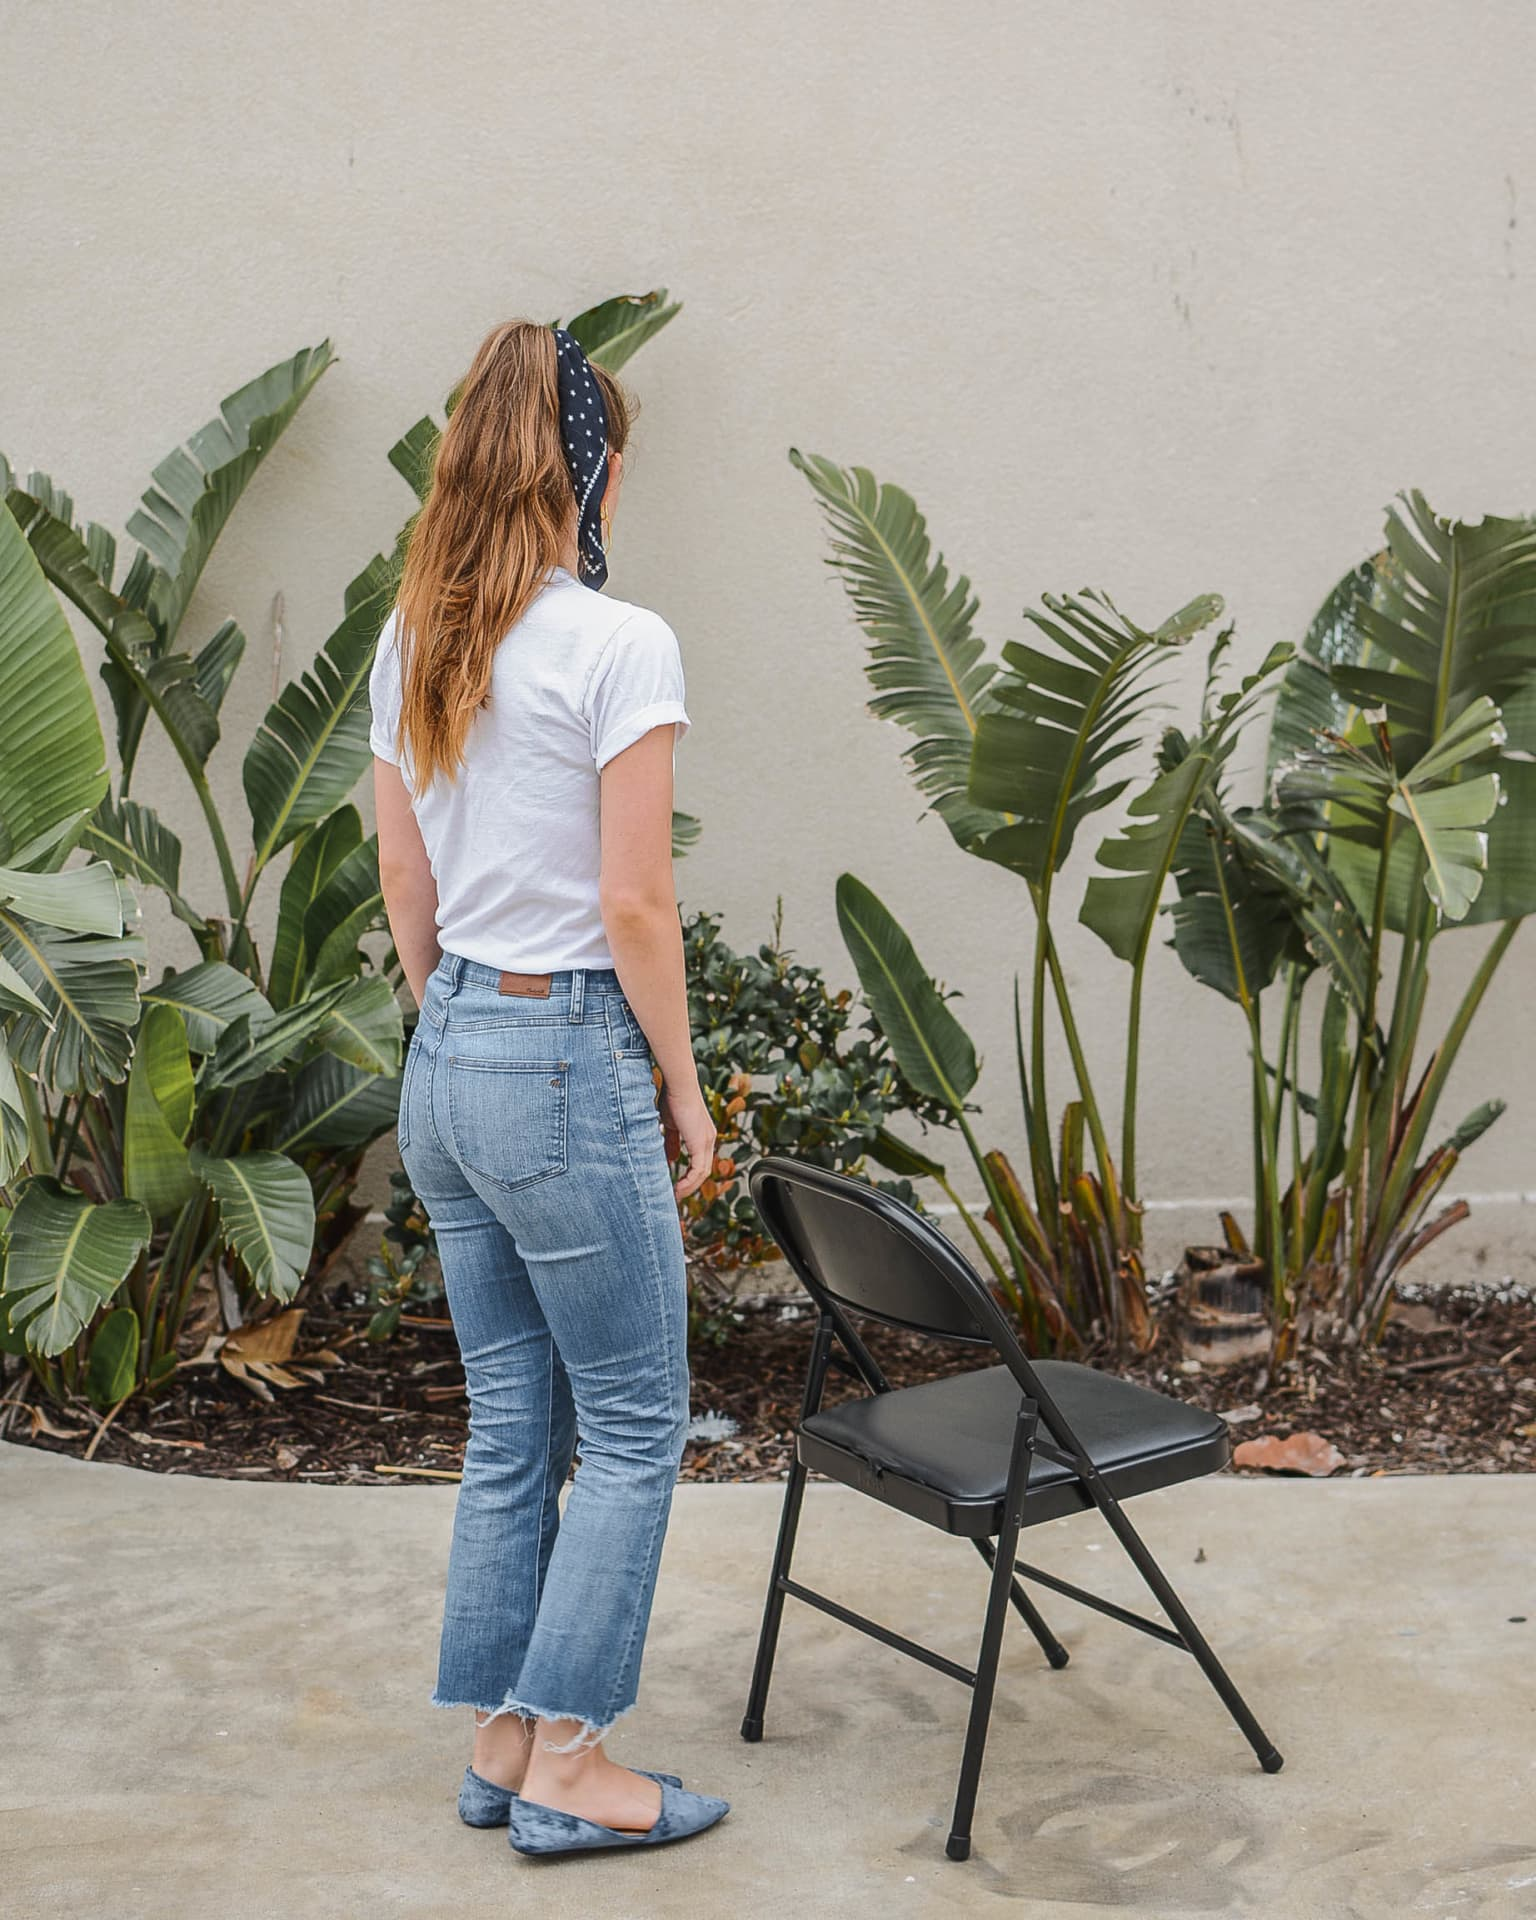 Madewell Photography Contest